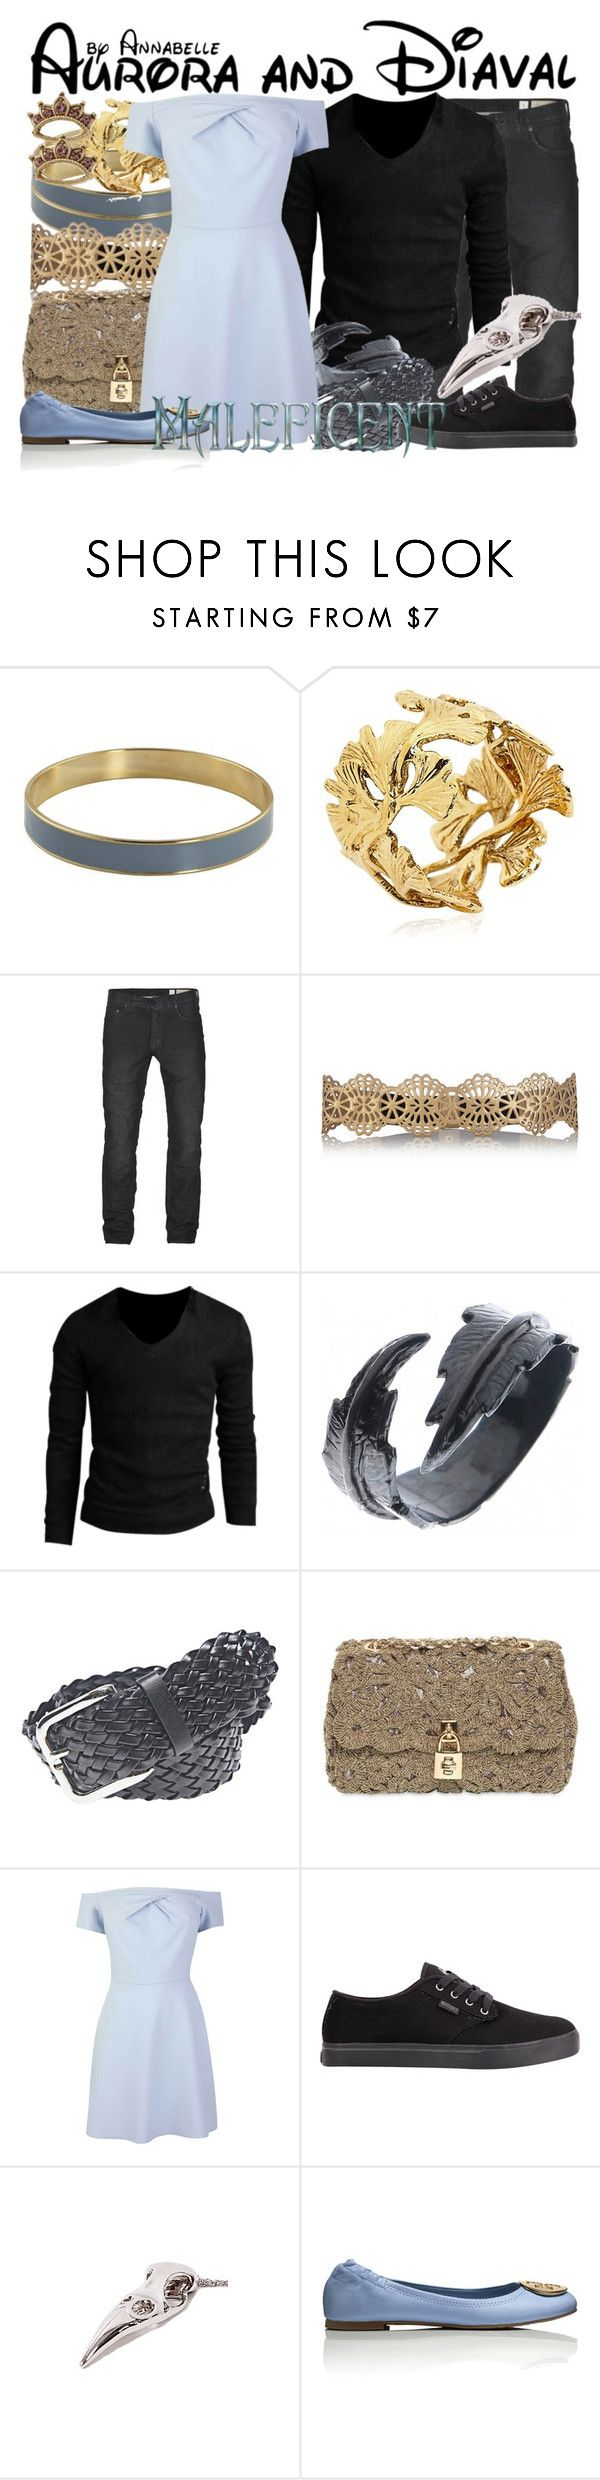 """Aurora and Diaval"" by annabelle-95 ❤ liked on Polyvore featuring Aurélie Bidermann, AllSaints, Oasis, Allegra K, LeiVanKash, Wet Seal, Dolce&Gabbana, Etnies, MDKN and Tory Burch"